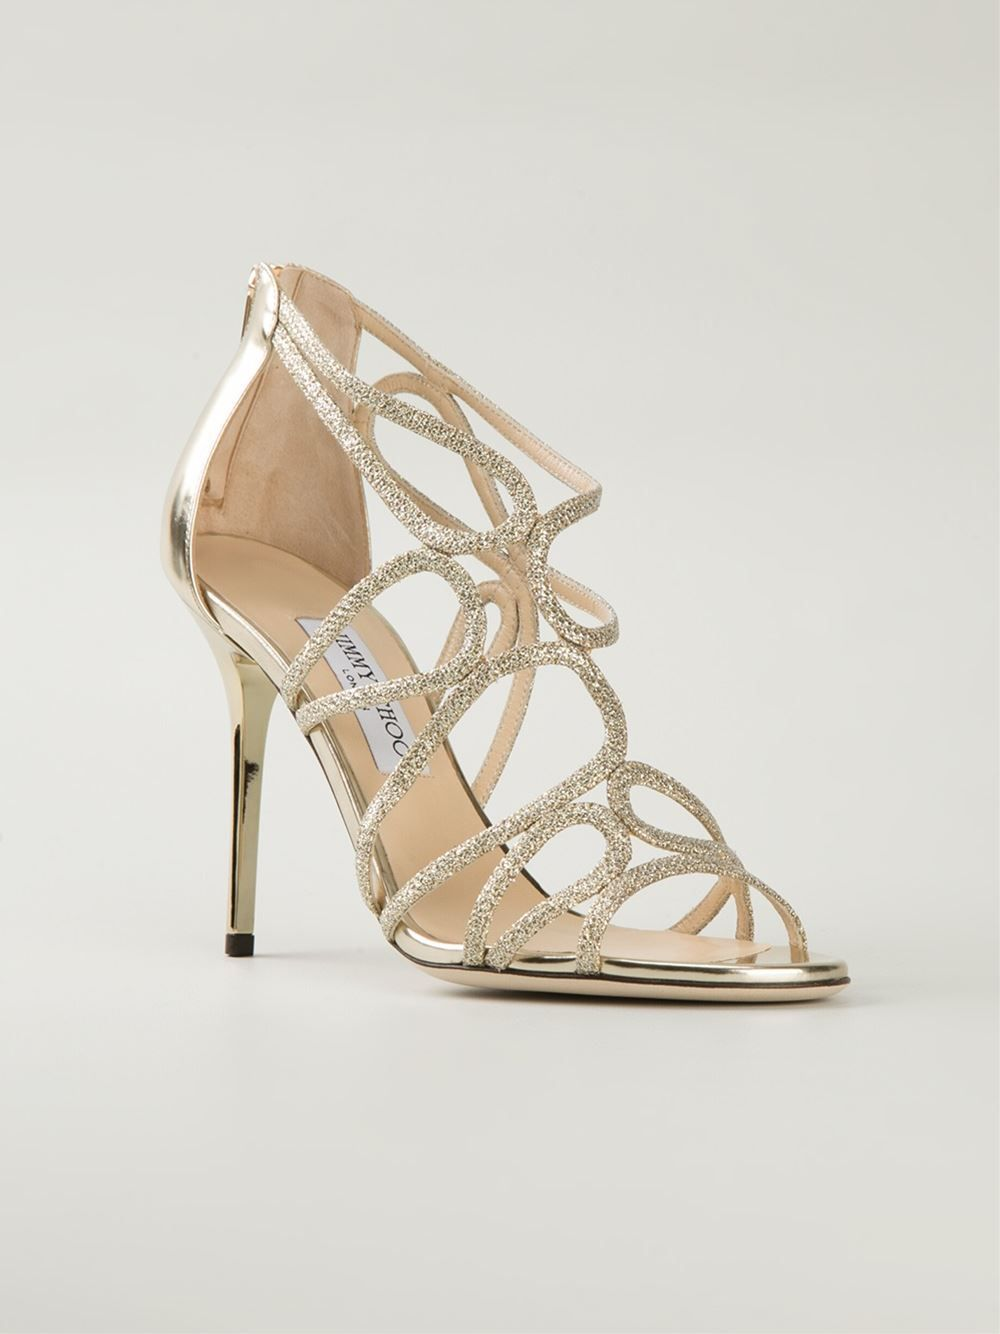 583ad0d9d7dc Jimmy Choo  Layla  Sandals in Gold (metallic)